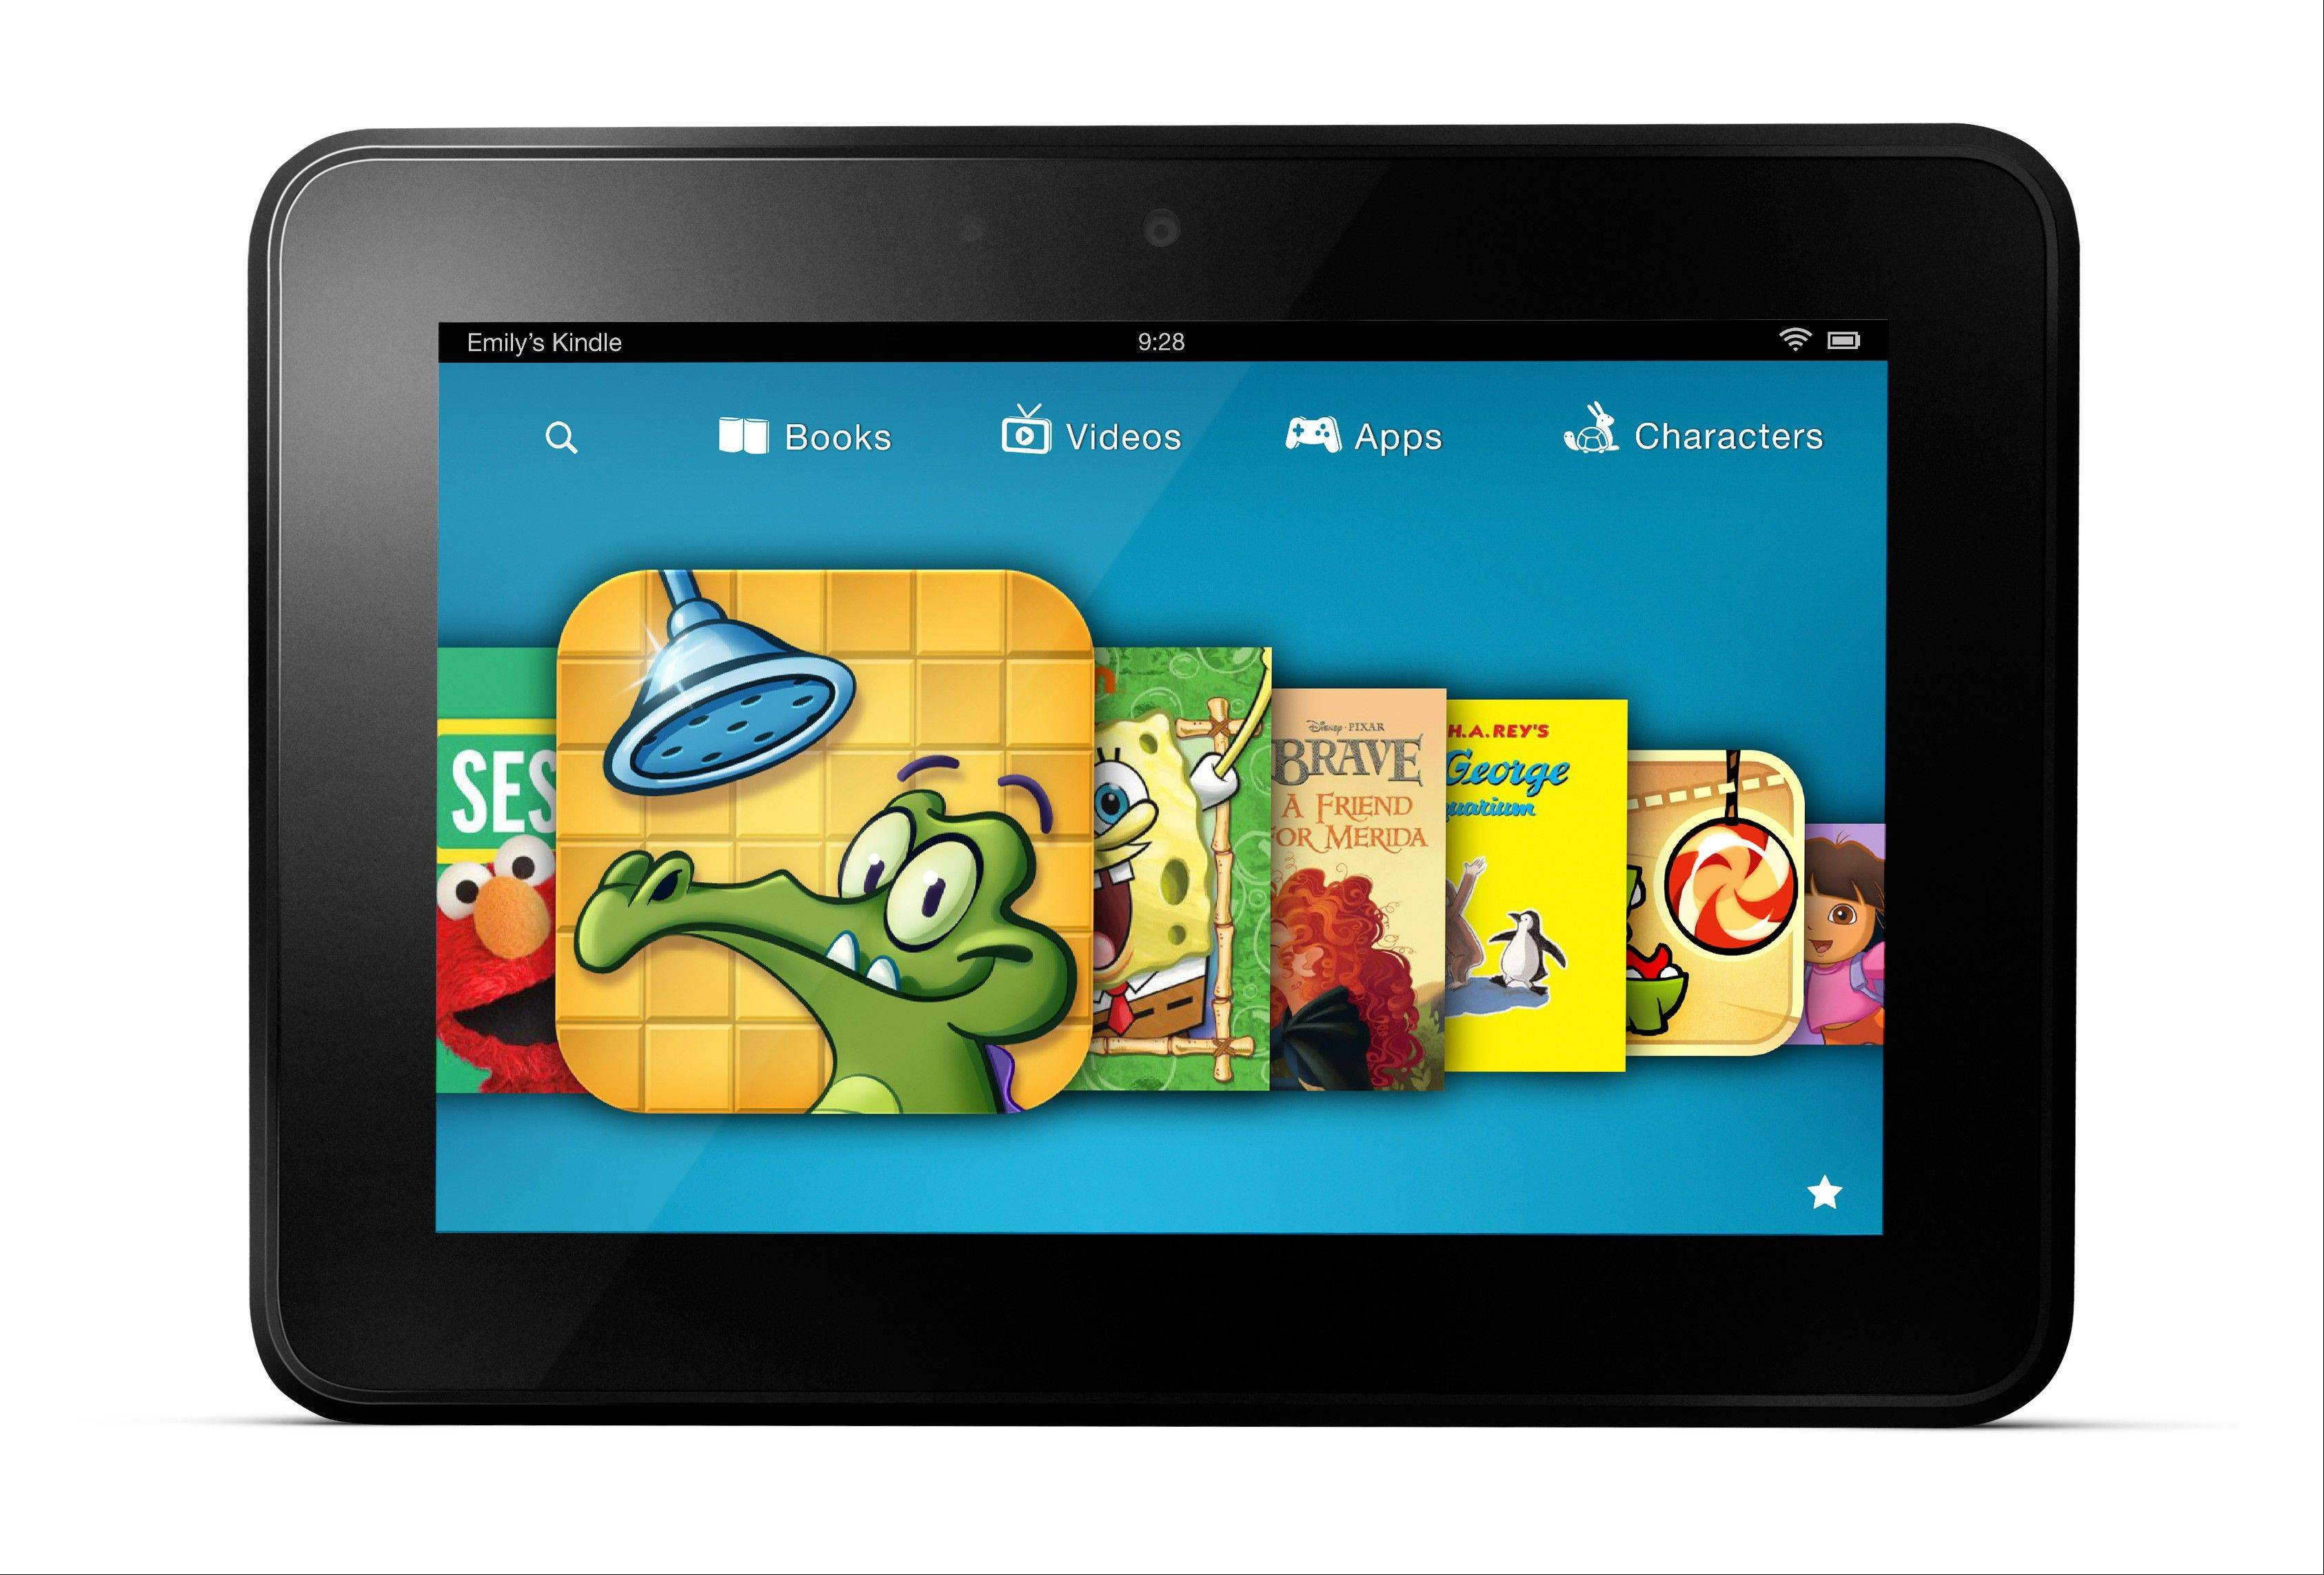 This image provided by Amazon shows a new subscription service for children's games, videos and books aimed at getting more kids to use its Kindle Fire tablet devices. Amazon.com Inc. announced that the Kindle FreeTime Unlimited service will be available in the next few weeks as part of an automatic software update.